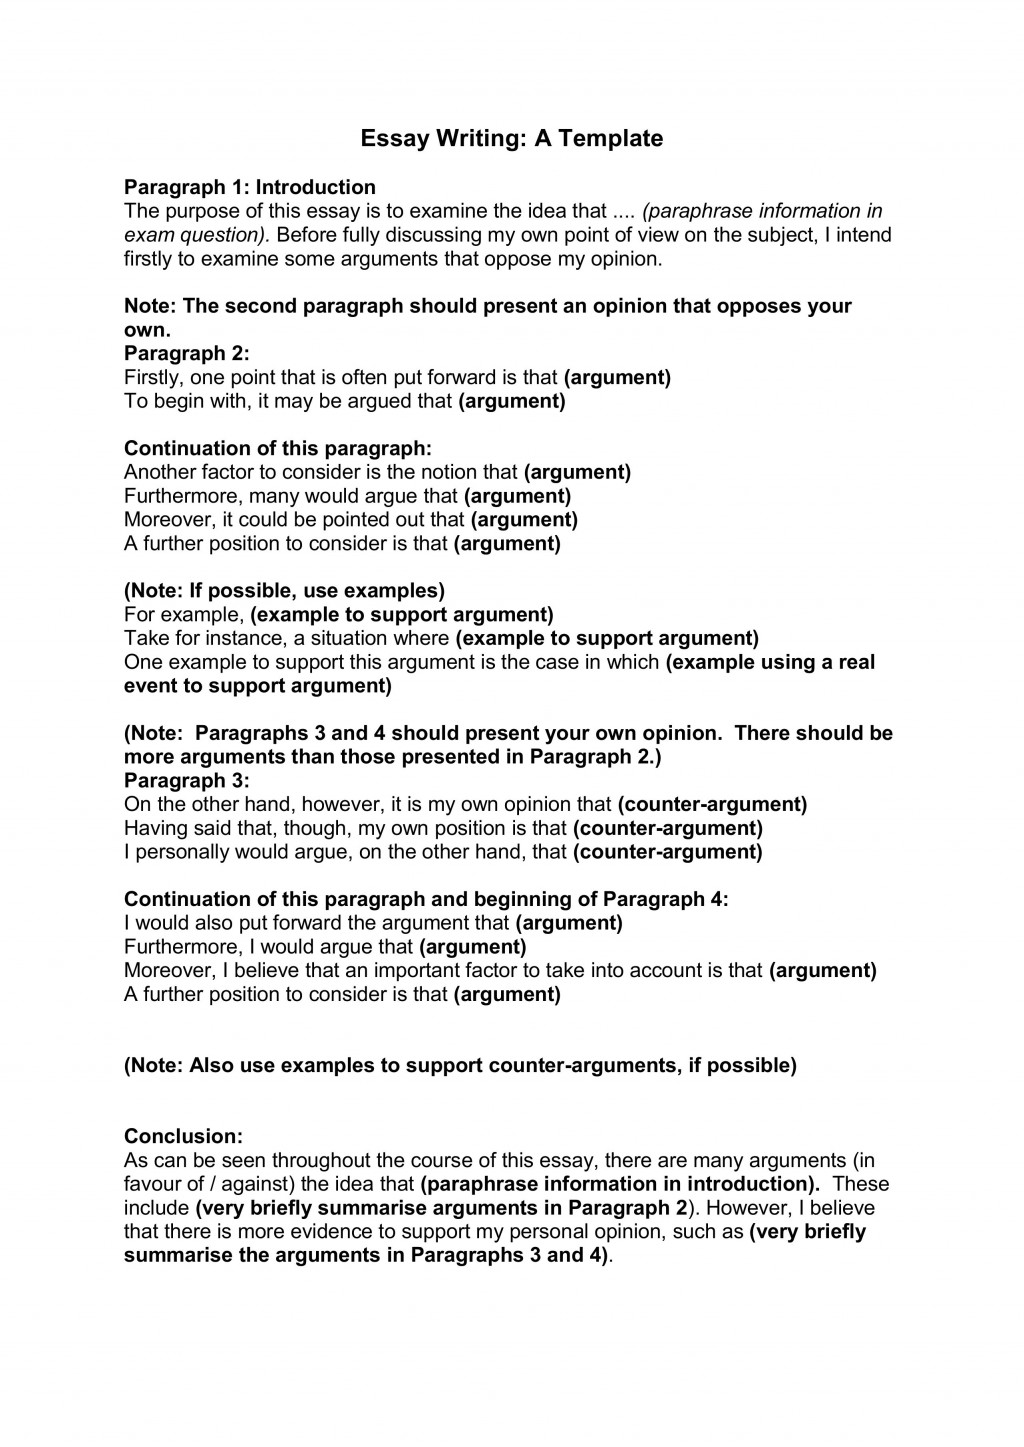 016 Image Essay Writing Homework Service Byassignmentdepa Good This I Believe Topics Template For P Sampless Stupendous Examples Npr College Large